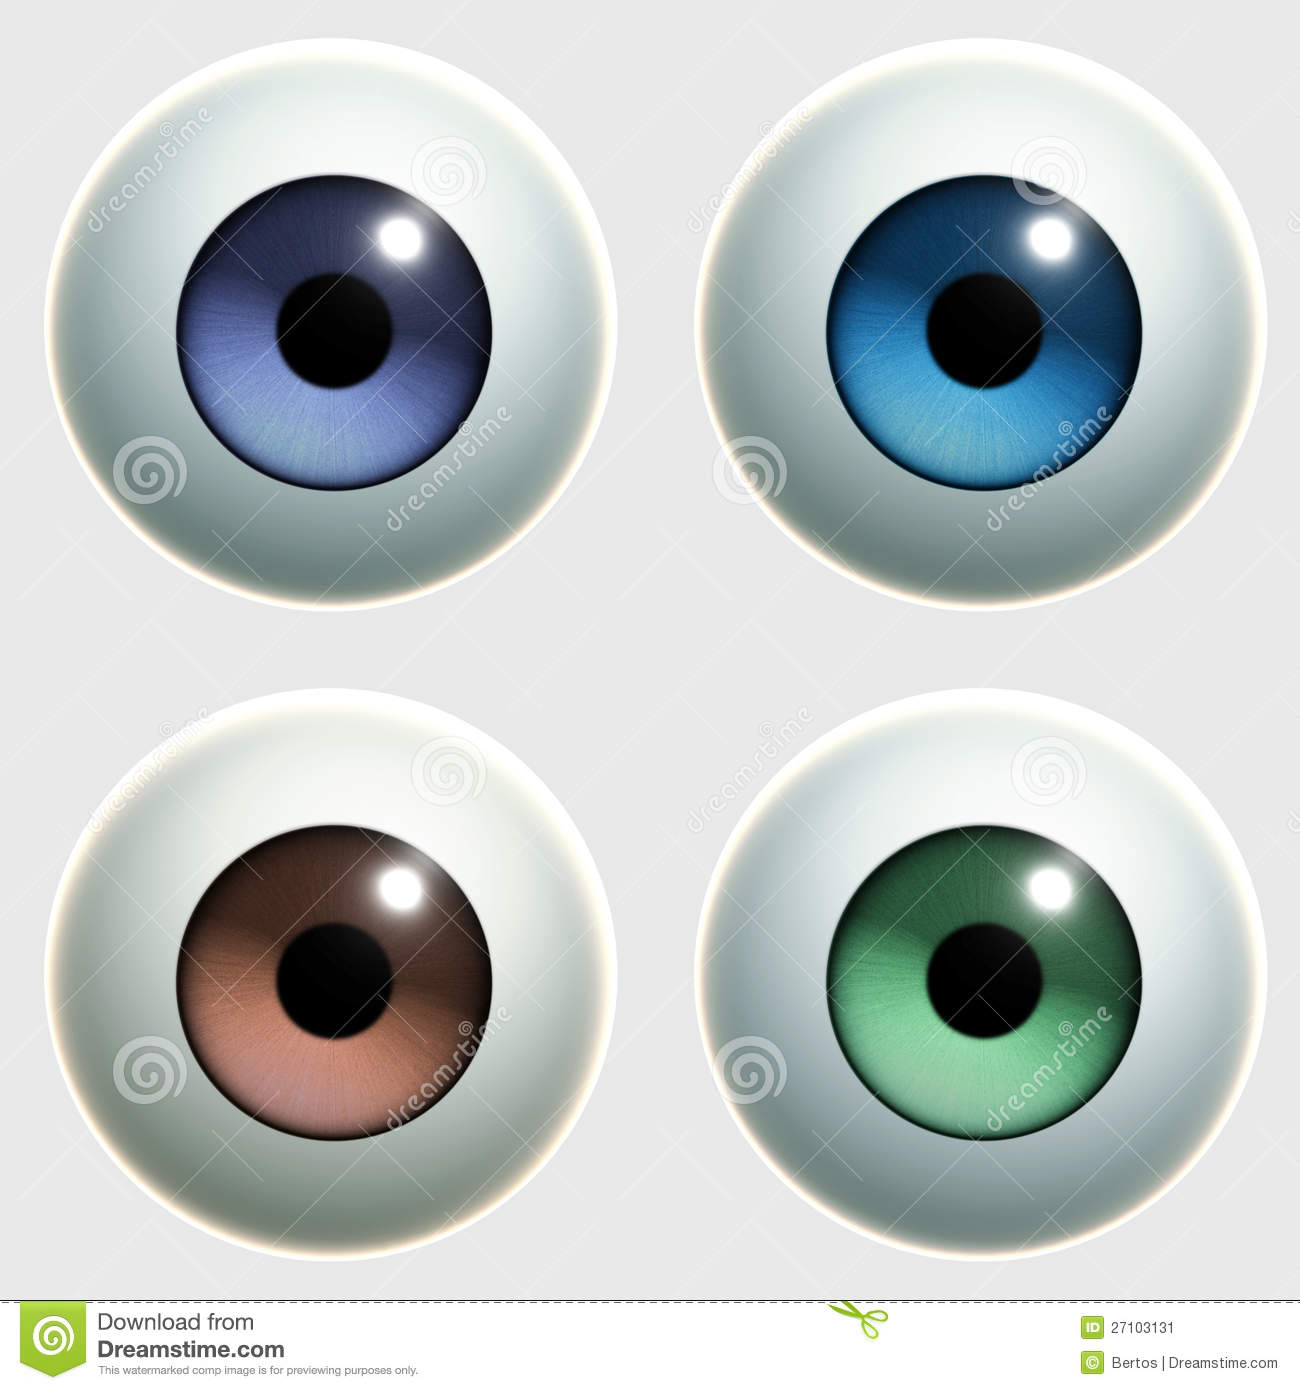 Toy Eye Stock Image - Image: 27103131